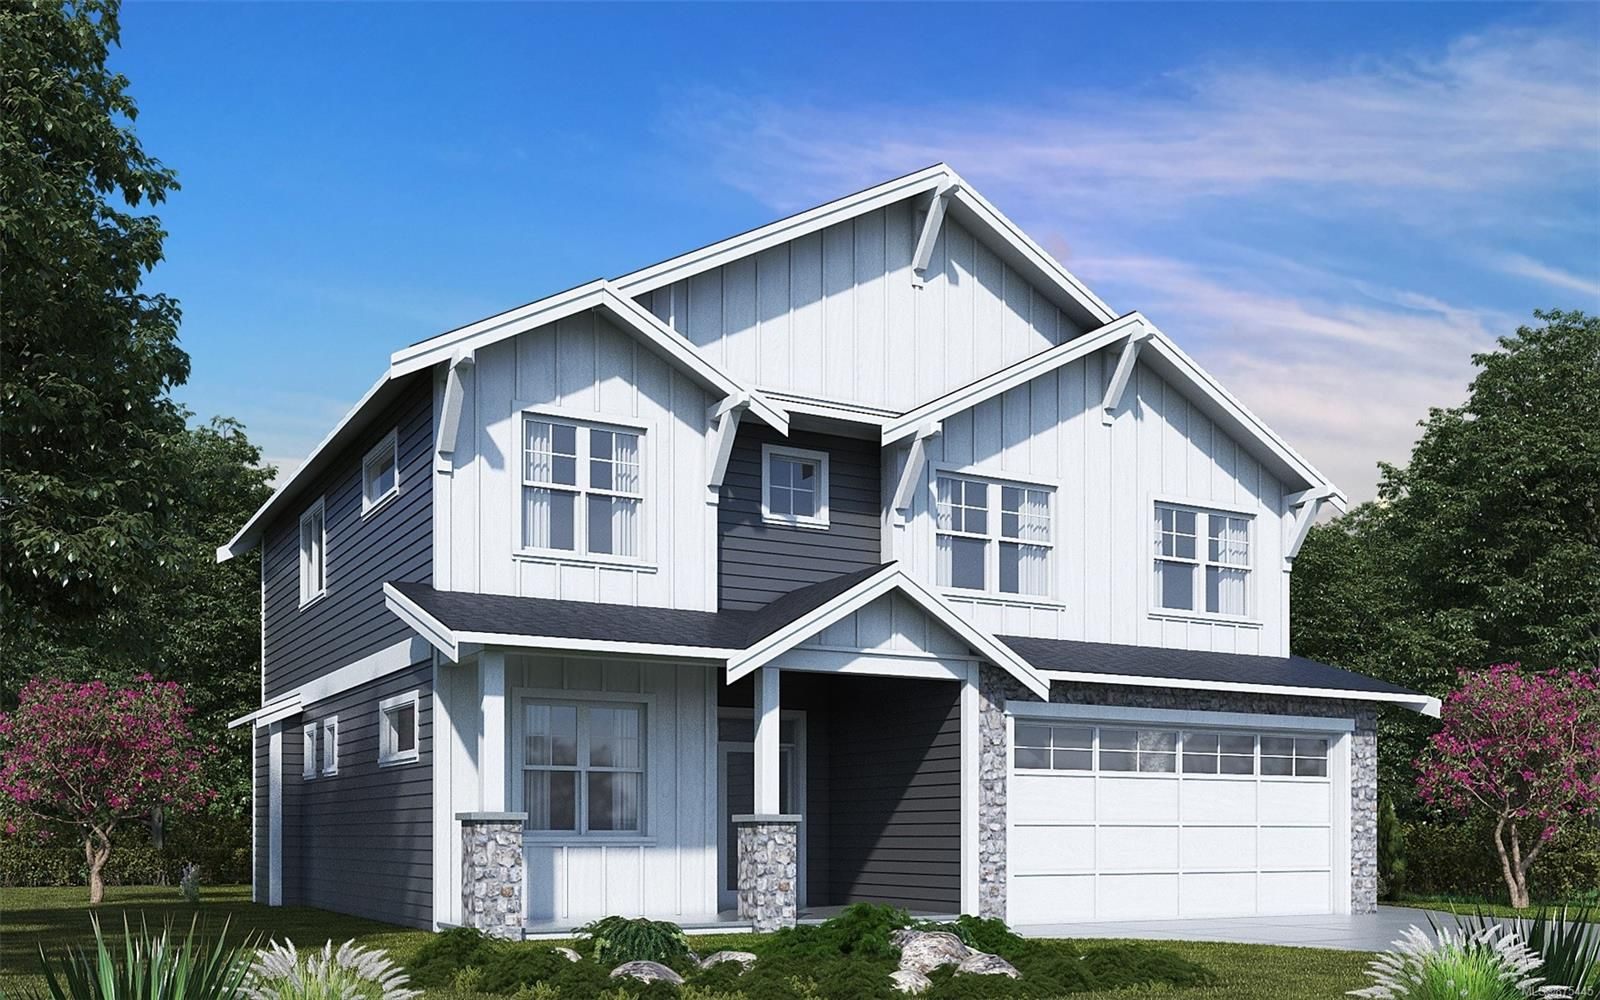 Main Photo: 7020 Clarkson Pl in : Sk Broomhill House for sale (Sooke)  : MLS®# 875445